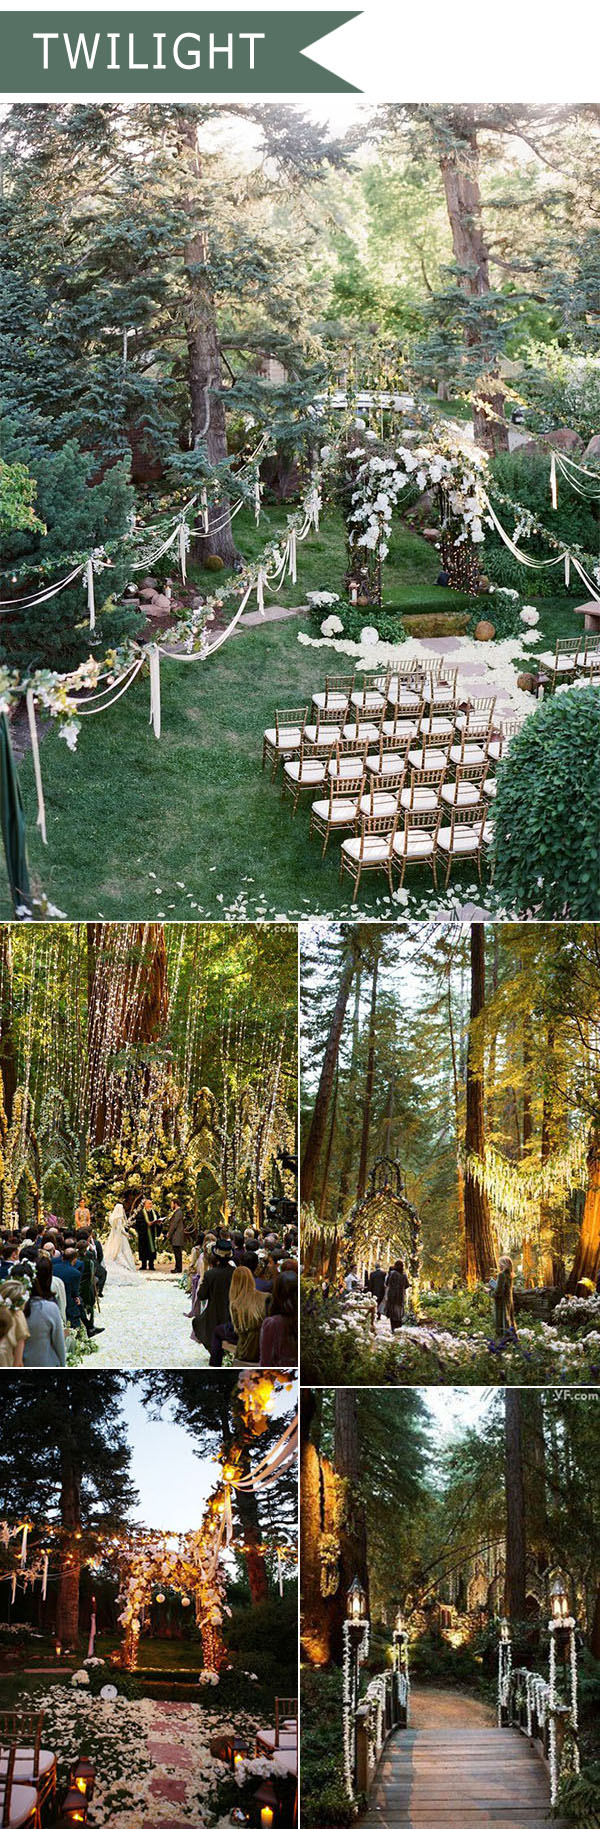 2016-trending-twilight-forest-themed-wedding-ideas